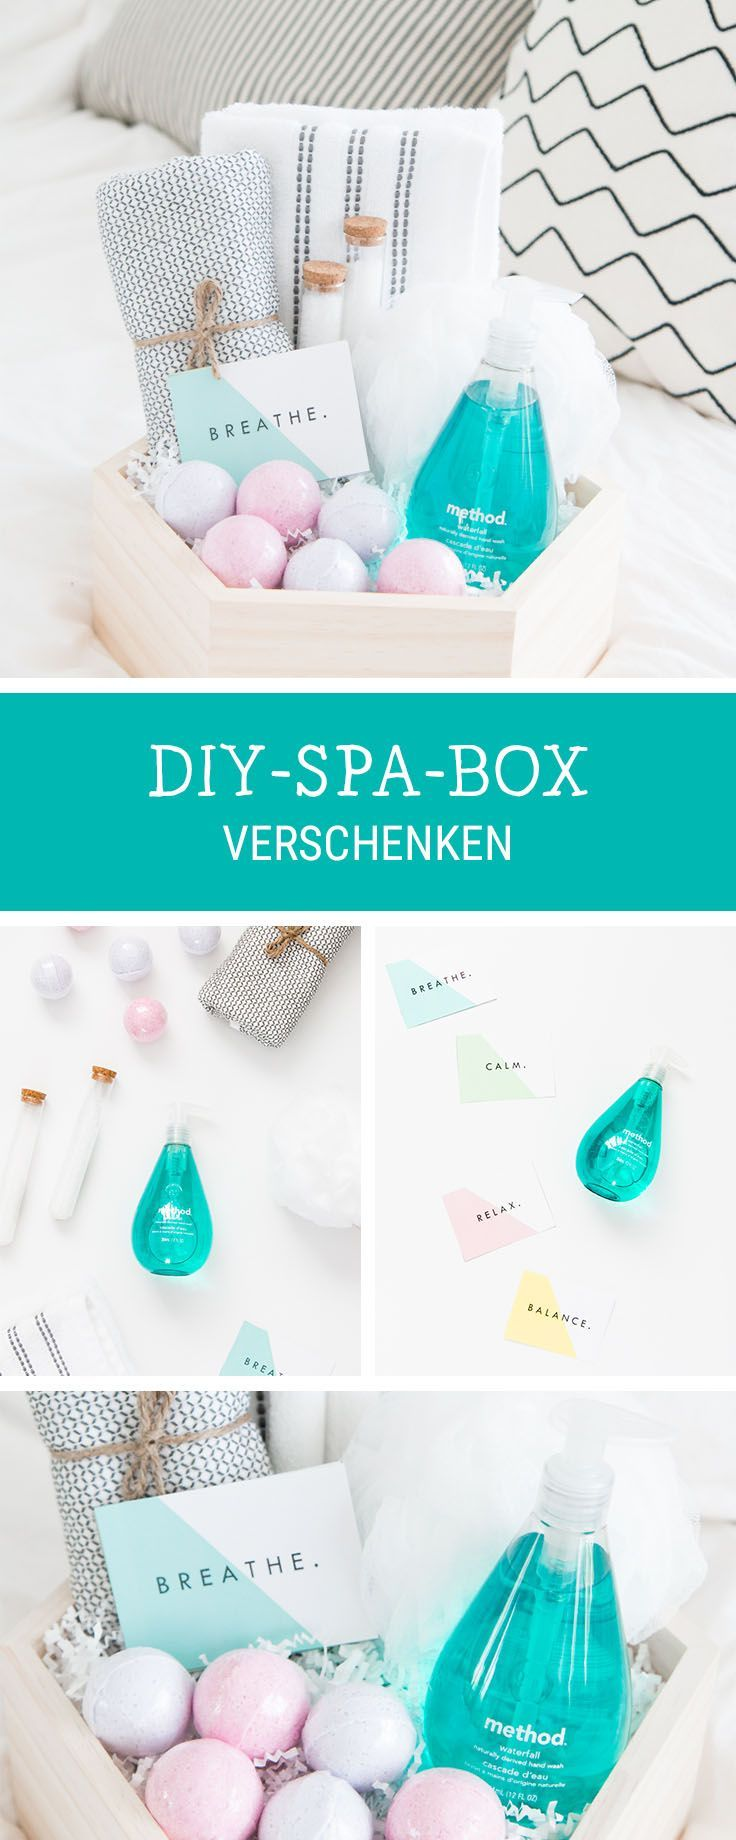 diy inspiration f r selbstgemachte geschenke geschenkbox f r einen spa tag selbermachen. Black Bedroom Furniture Sets. Home Design Ideas